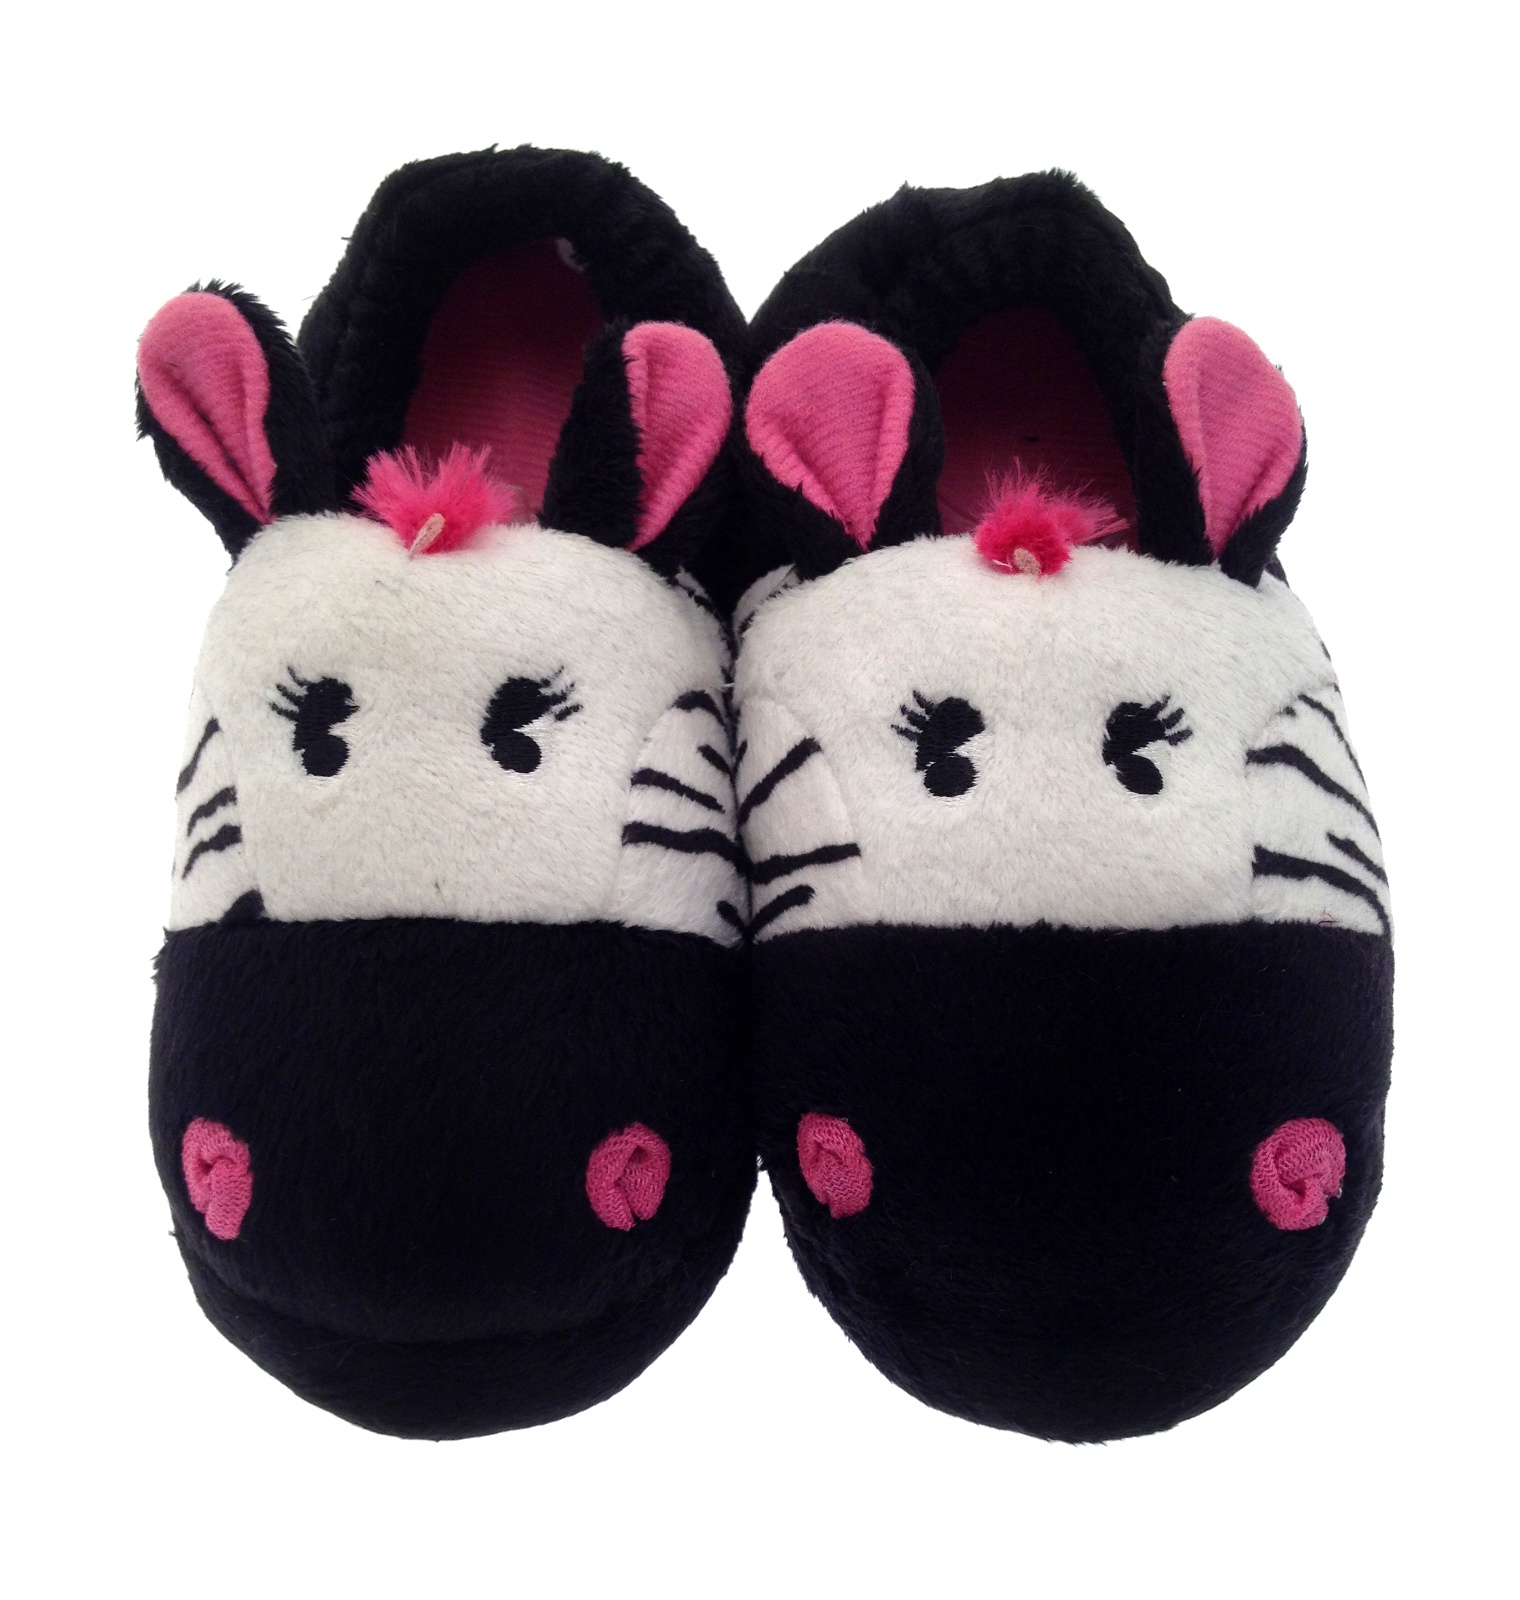 Girls Novelty Plush Animal Slippers Booties Kids Mule House Shoes Gift Size